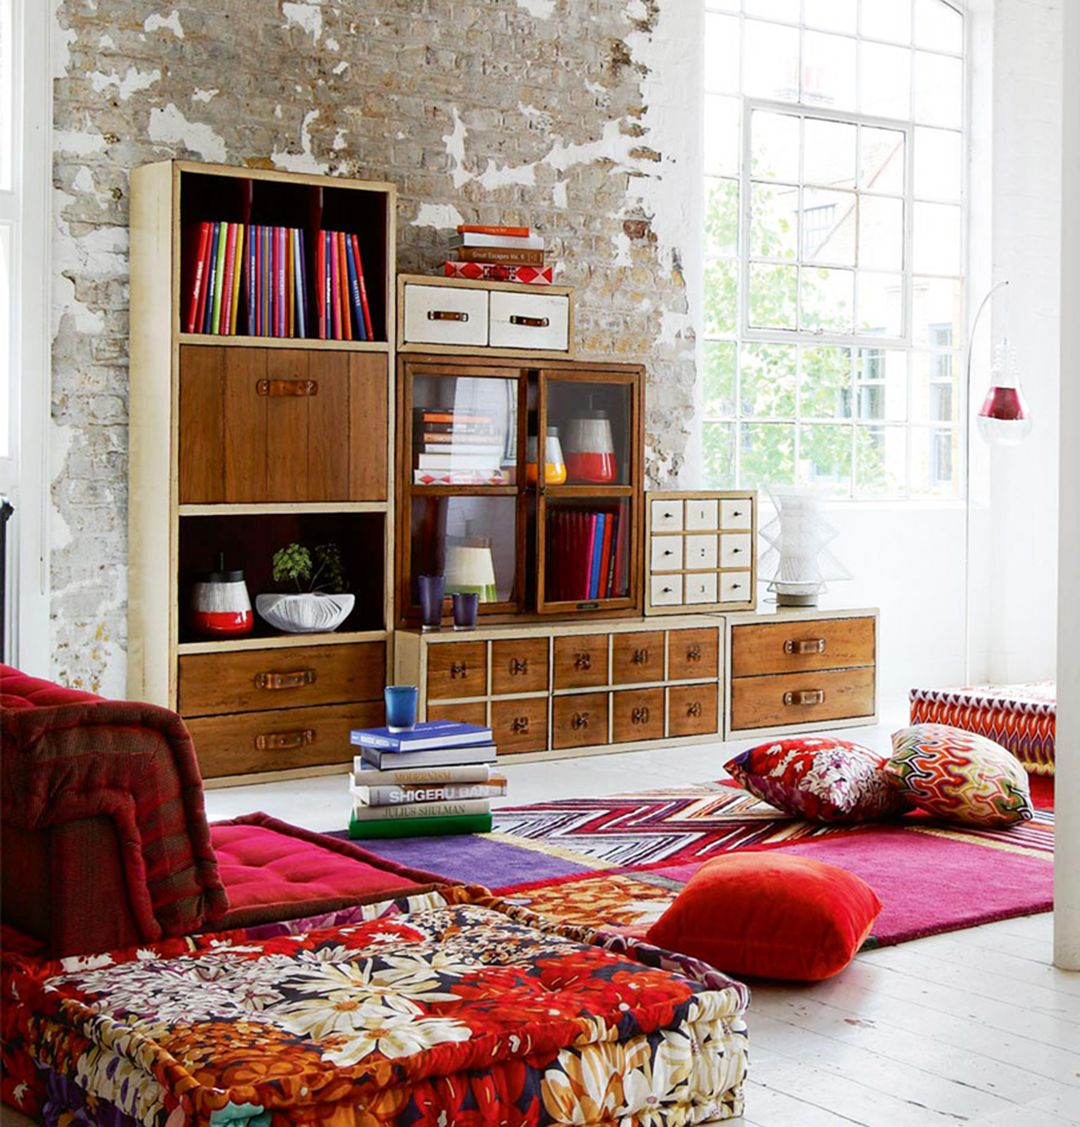 Boho Living Room Ideas With Cabinets And Shelves Source Hit Interiorscom